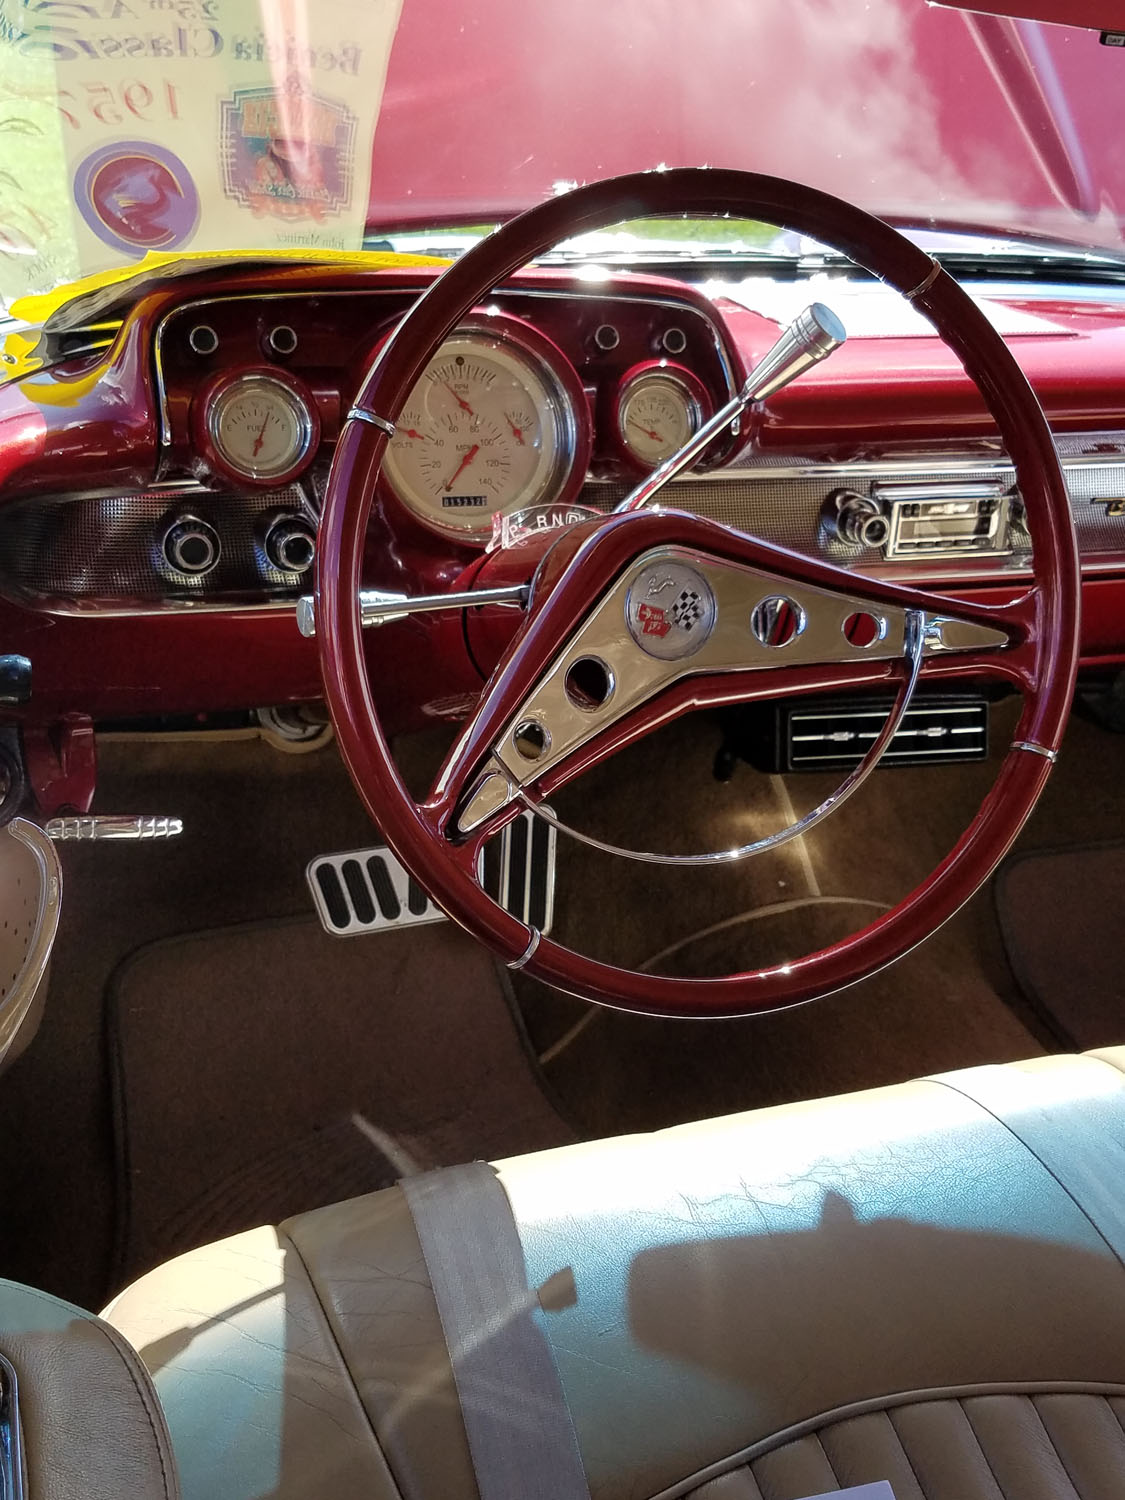 Another dashboard that was a thing of elegance.